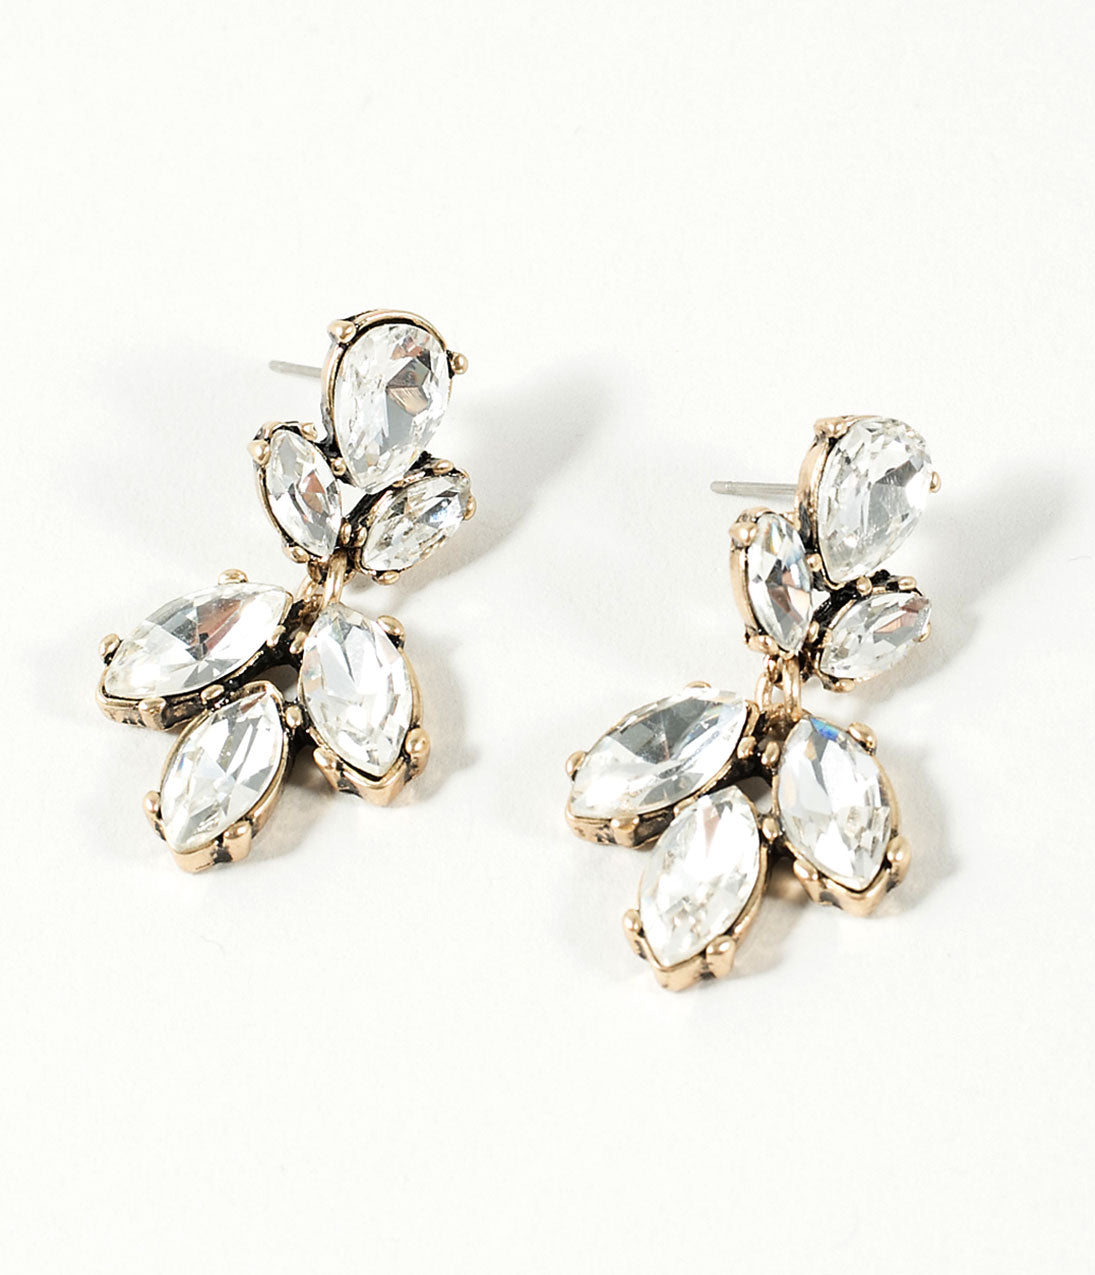 1930s Jewelry | Art Deco Style Jewelry Silver Crystal Rhinestone  Antique Gold Bella Drop Earrings $24.00 AT vintagedancer.com